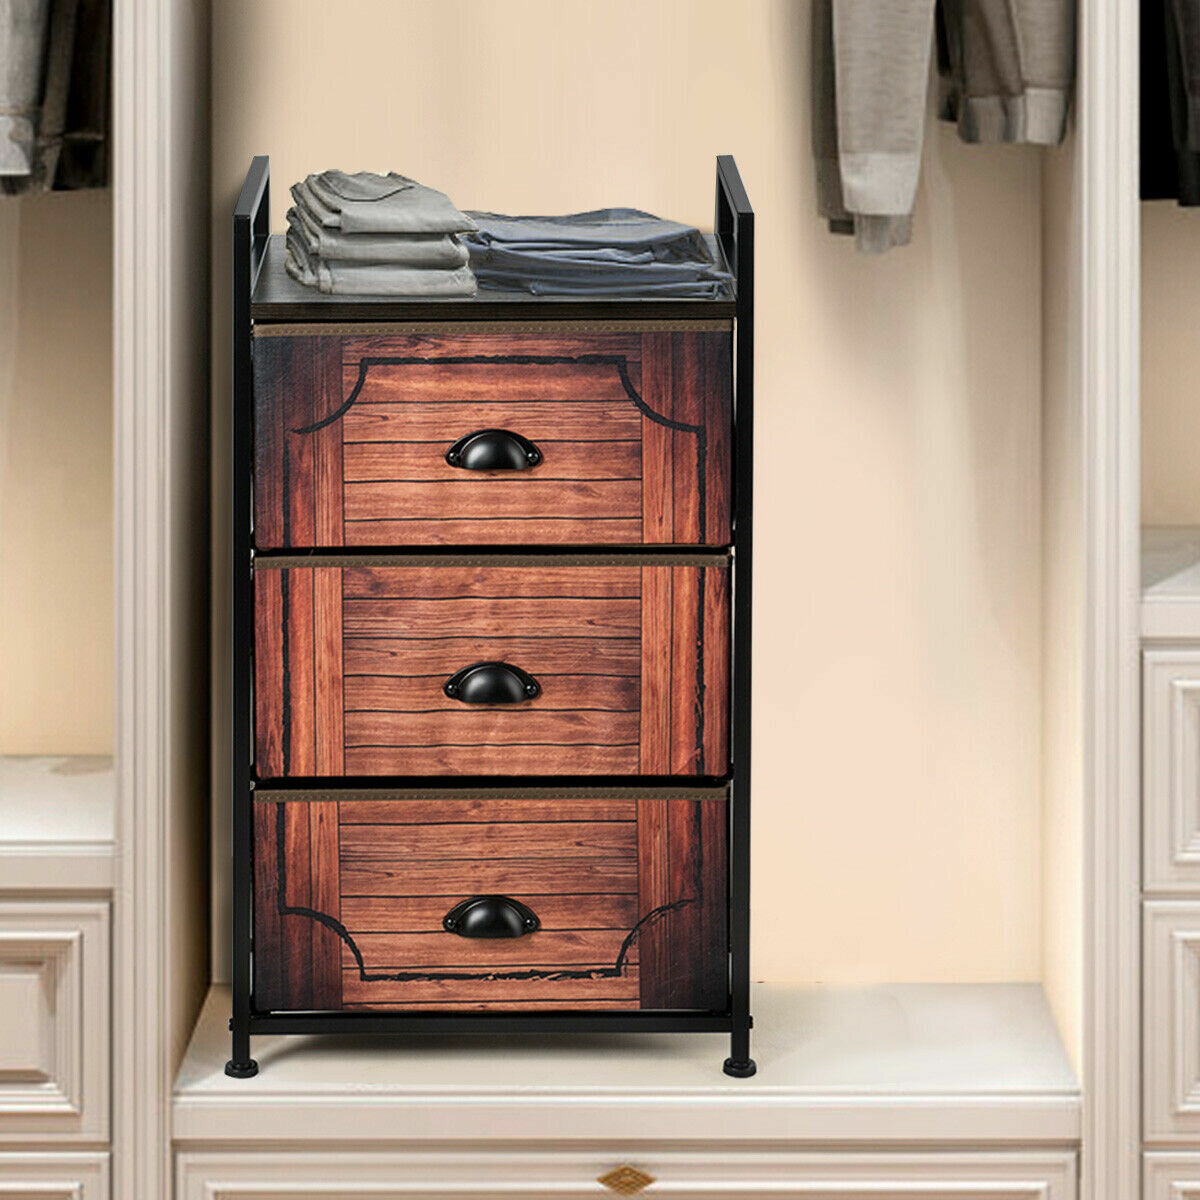 Union Rustic Miskell Storage Tower 3